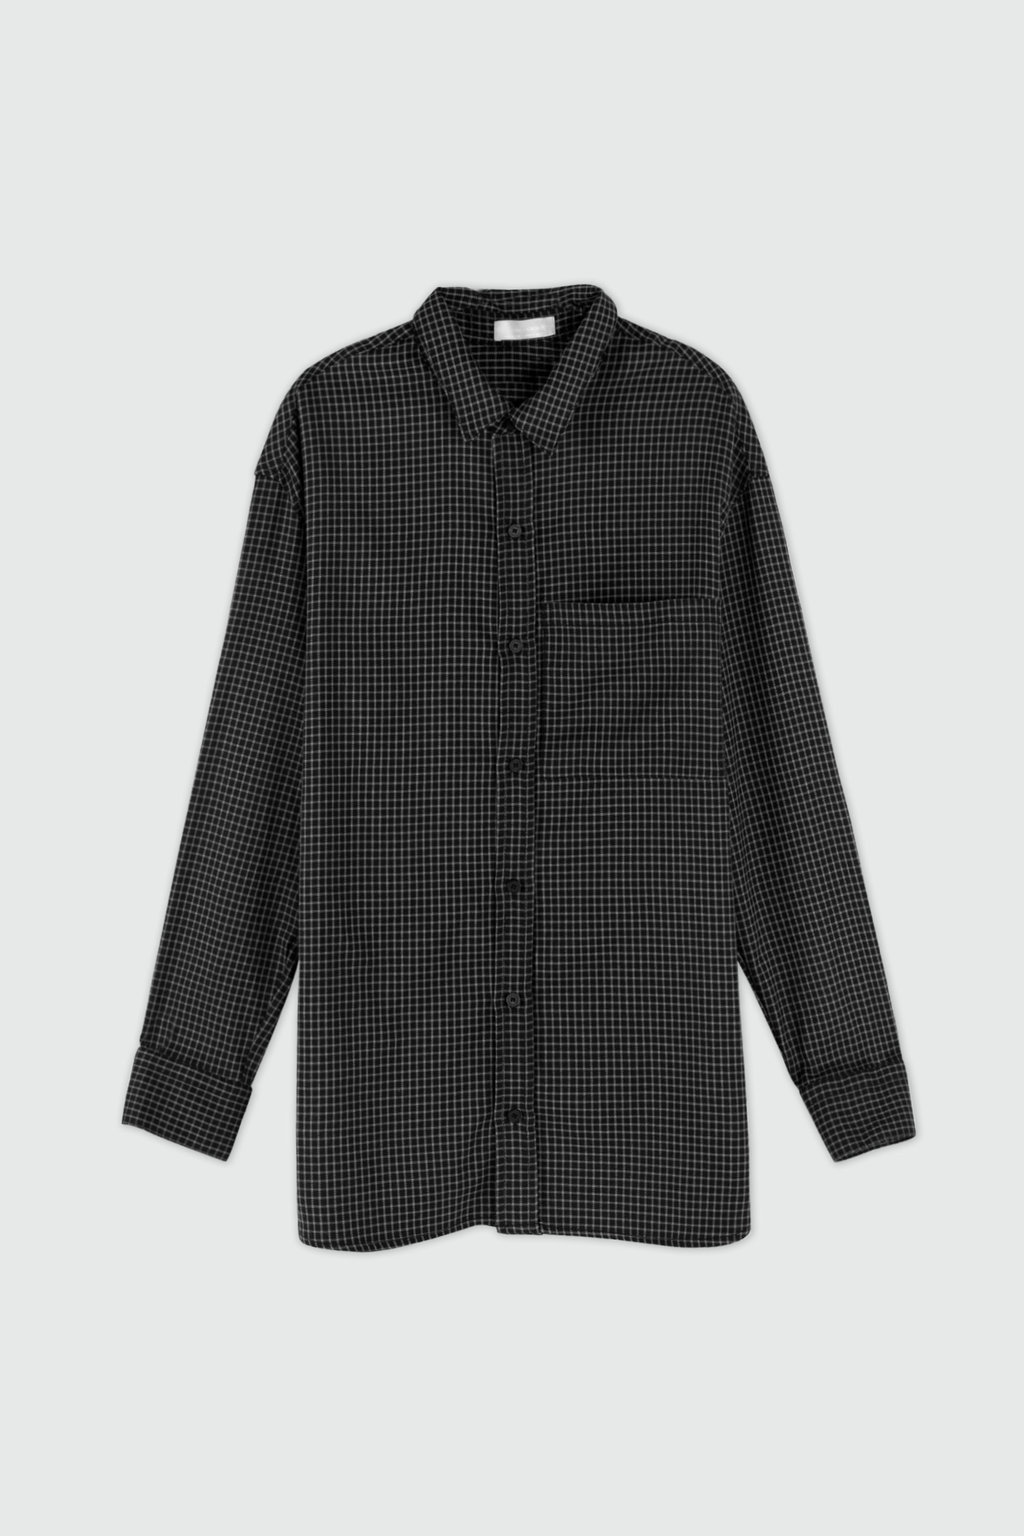 Shirt 3374 Black Check 11